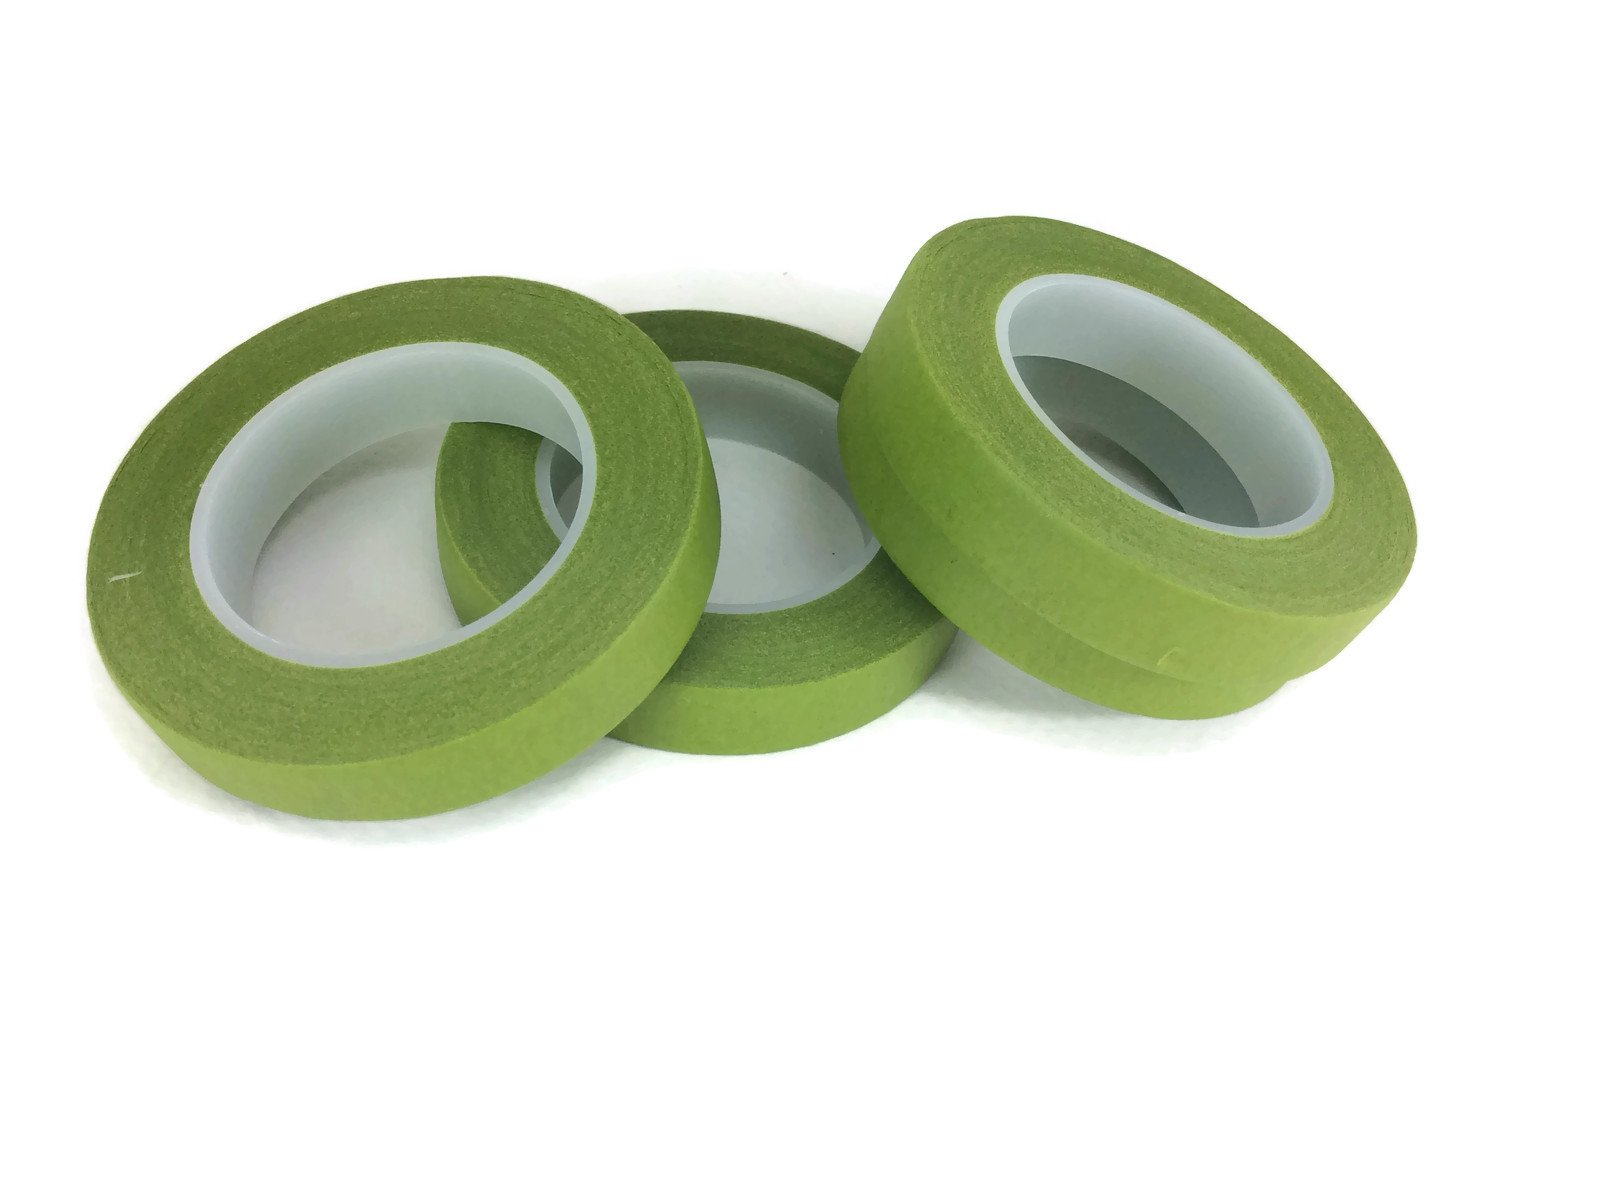 Floral Tape Green 4 Rolls 30 Yards Foral Dark Glue Cohesive 12 mm Pair Artificial Flower Stem Tool